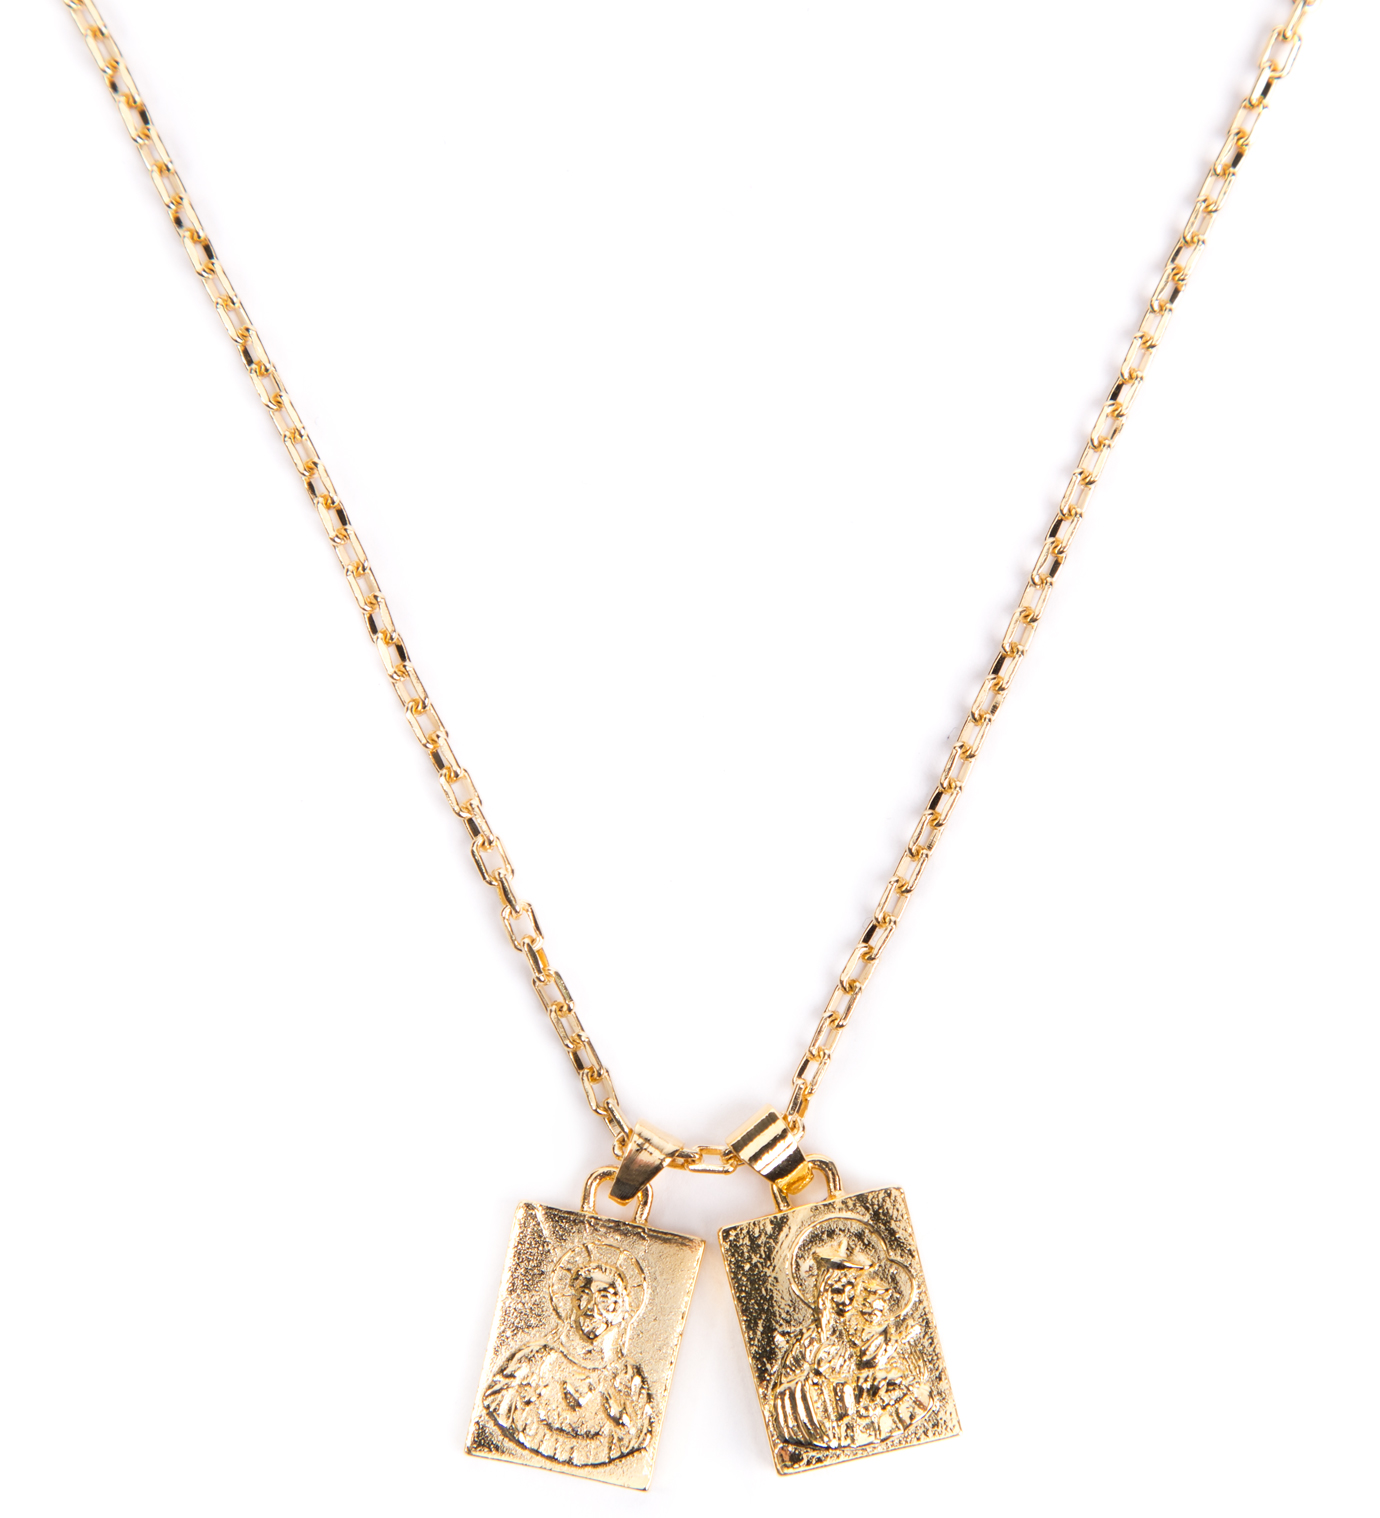 Gold Scapular Necklace: Mister Gold Mr. Scapular Necklace